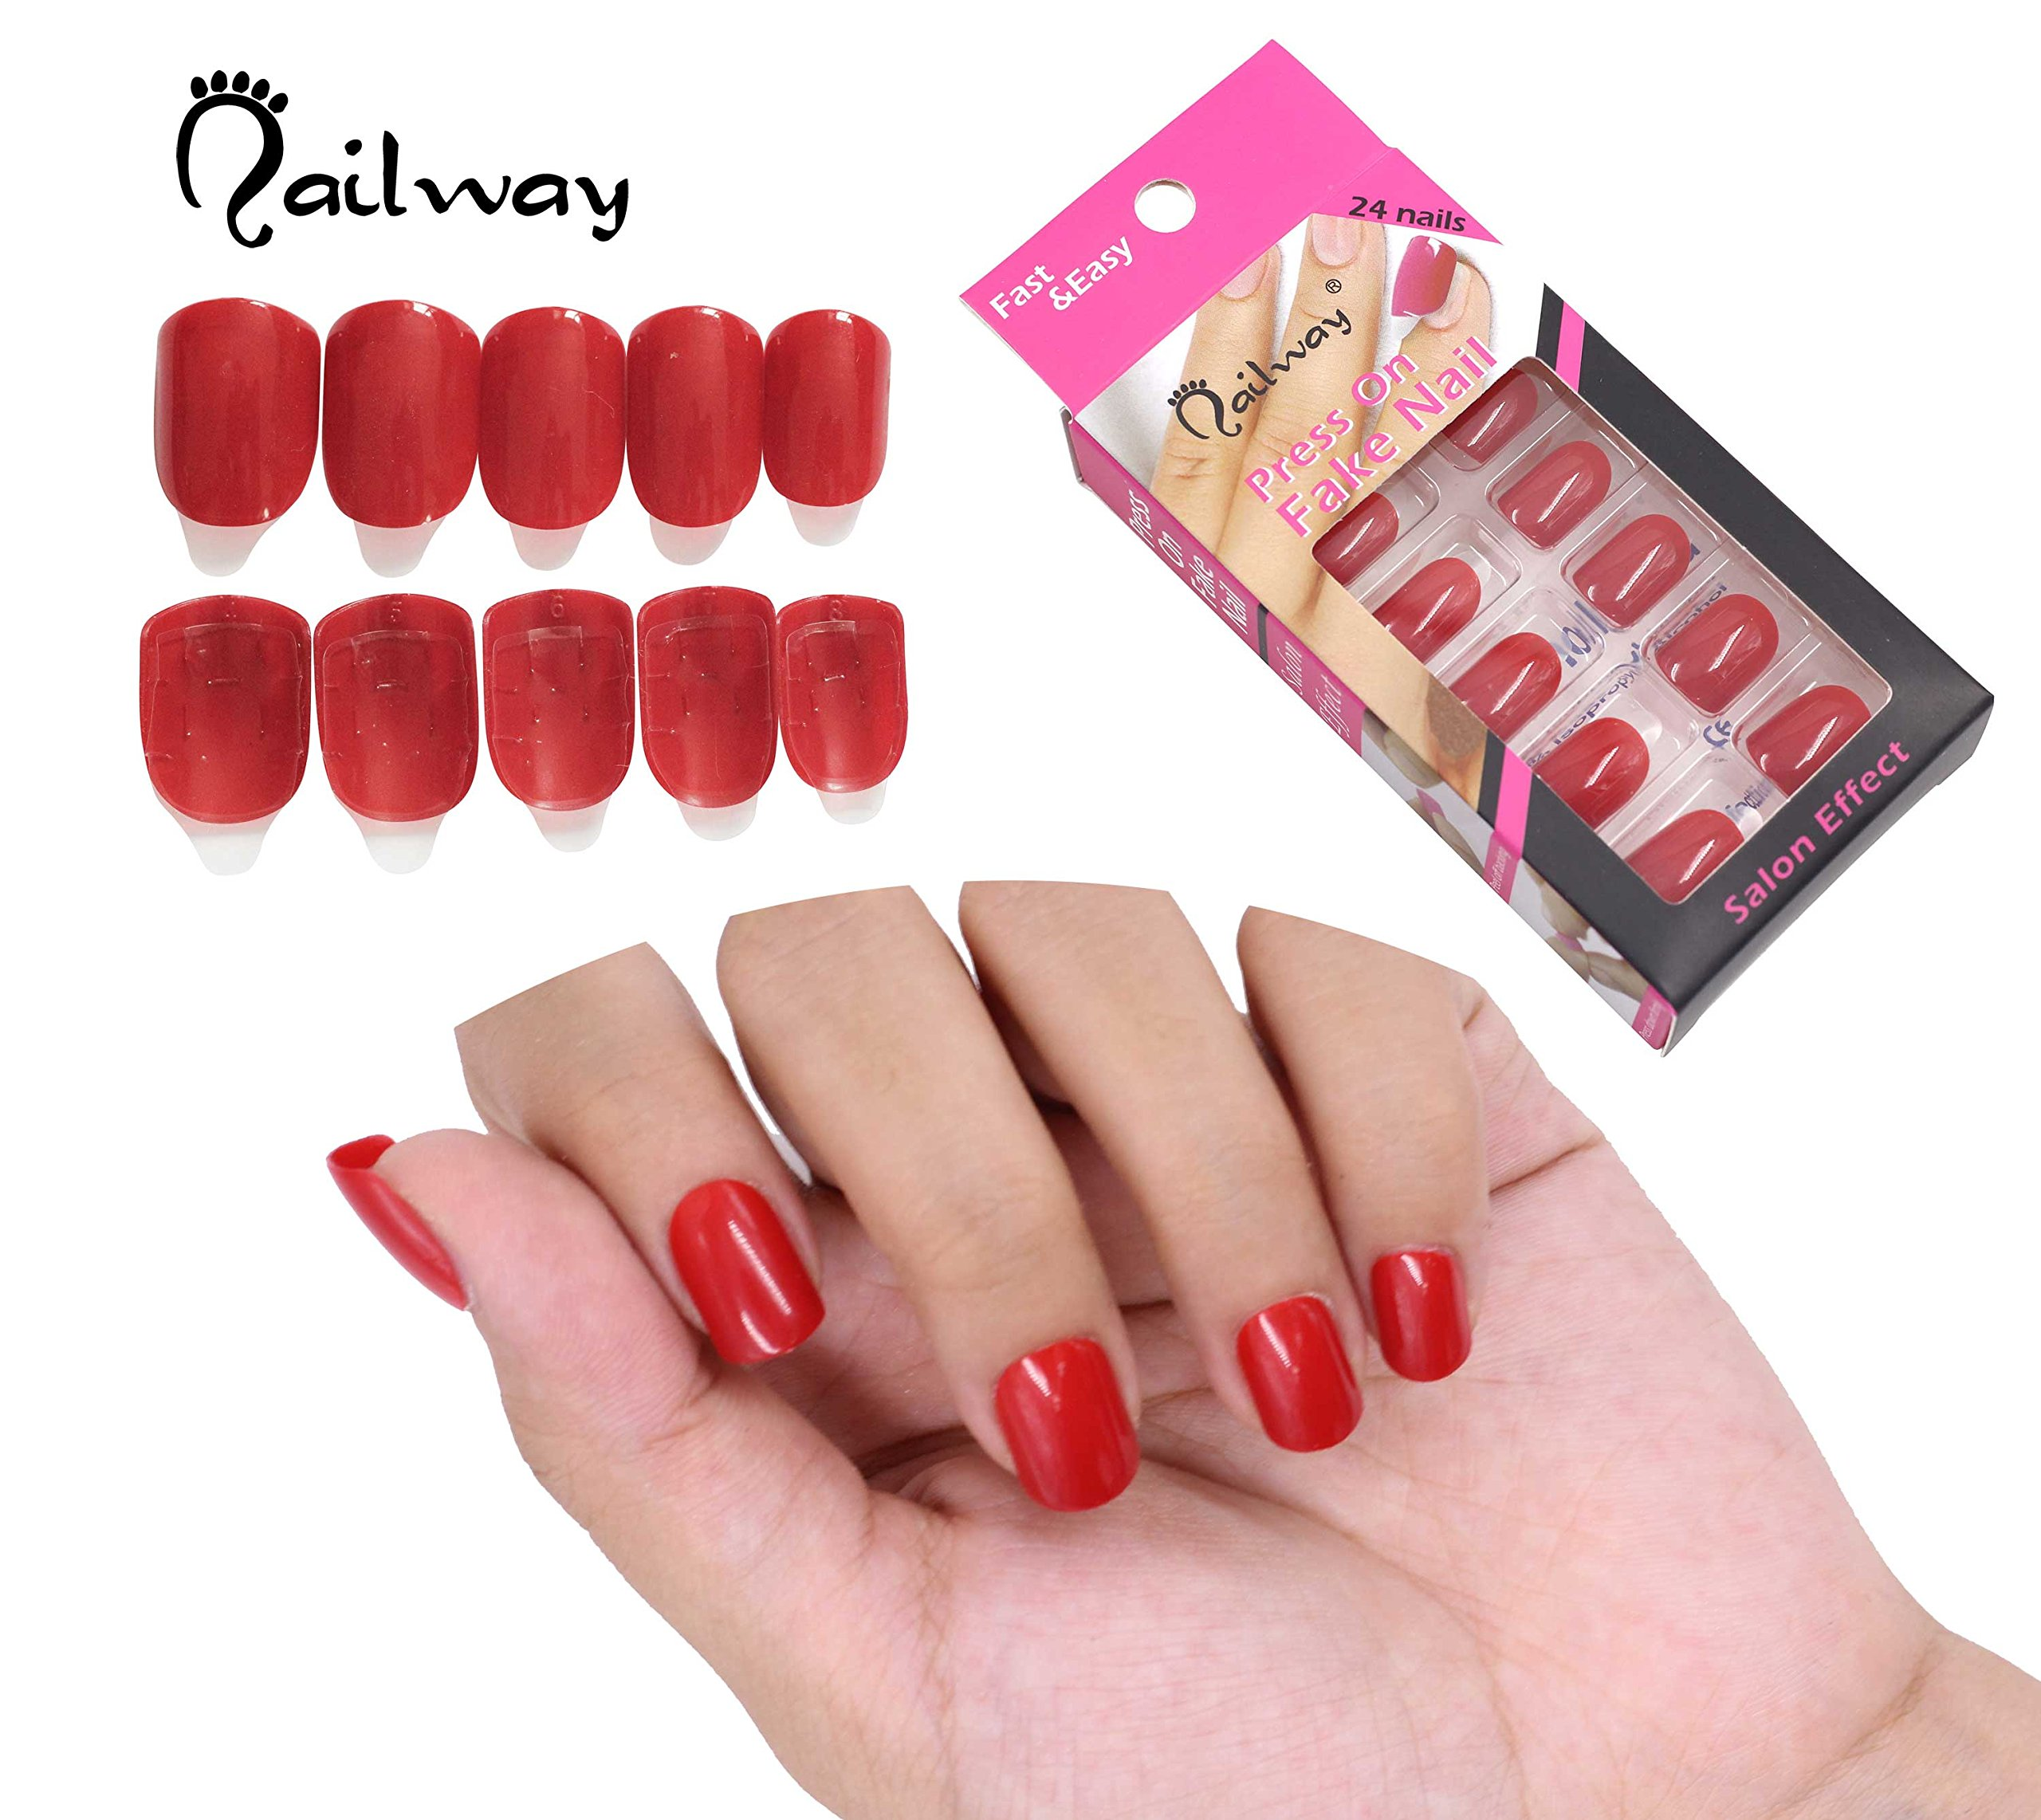 Amazon.com: NAILWAY Press On Fake Nails Self Adhesive Fake nail Pre-glue Nail Art with Adhesive Tab False Nails Tips Artificial Nails Manicure Set Fast ...